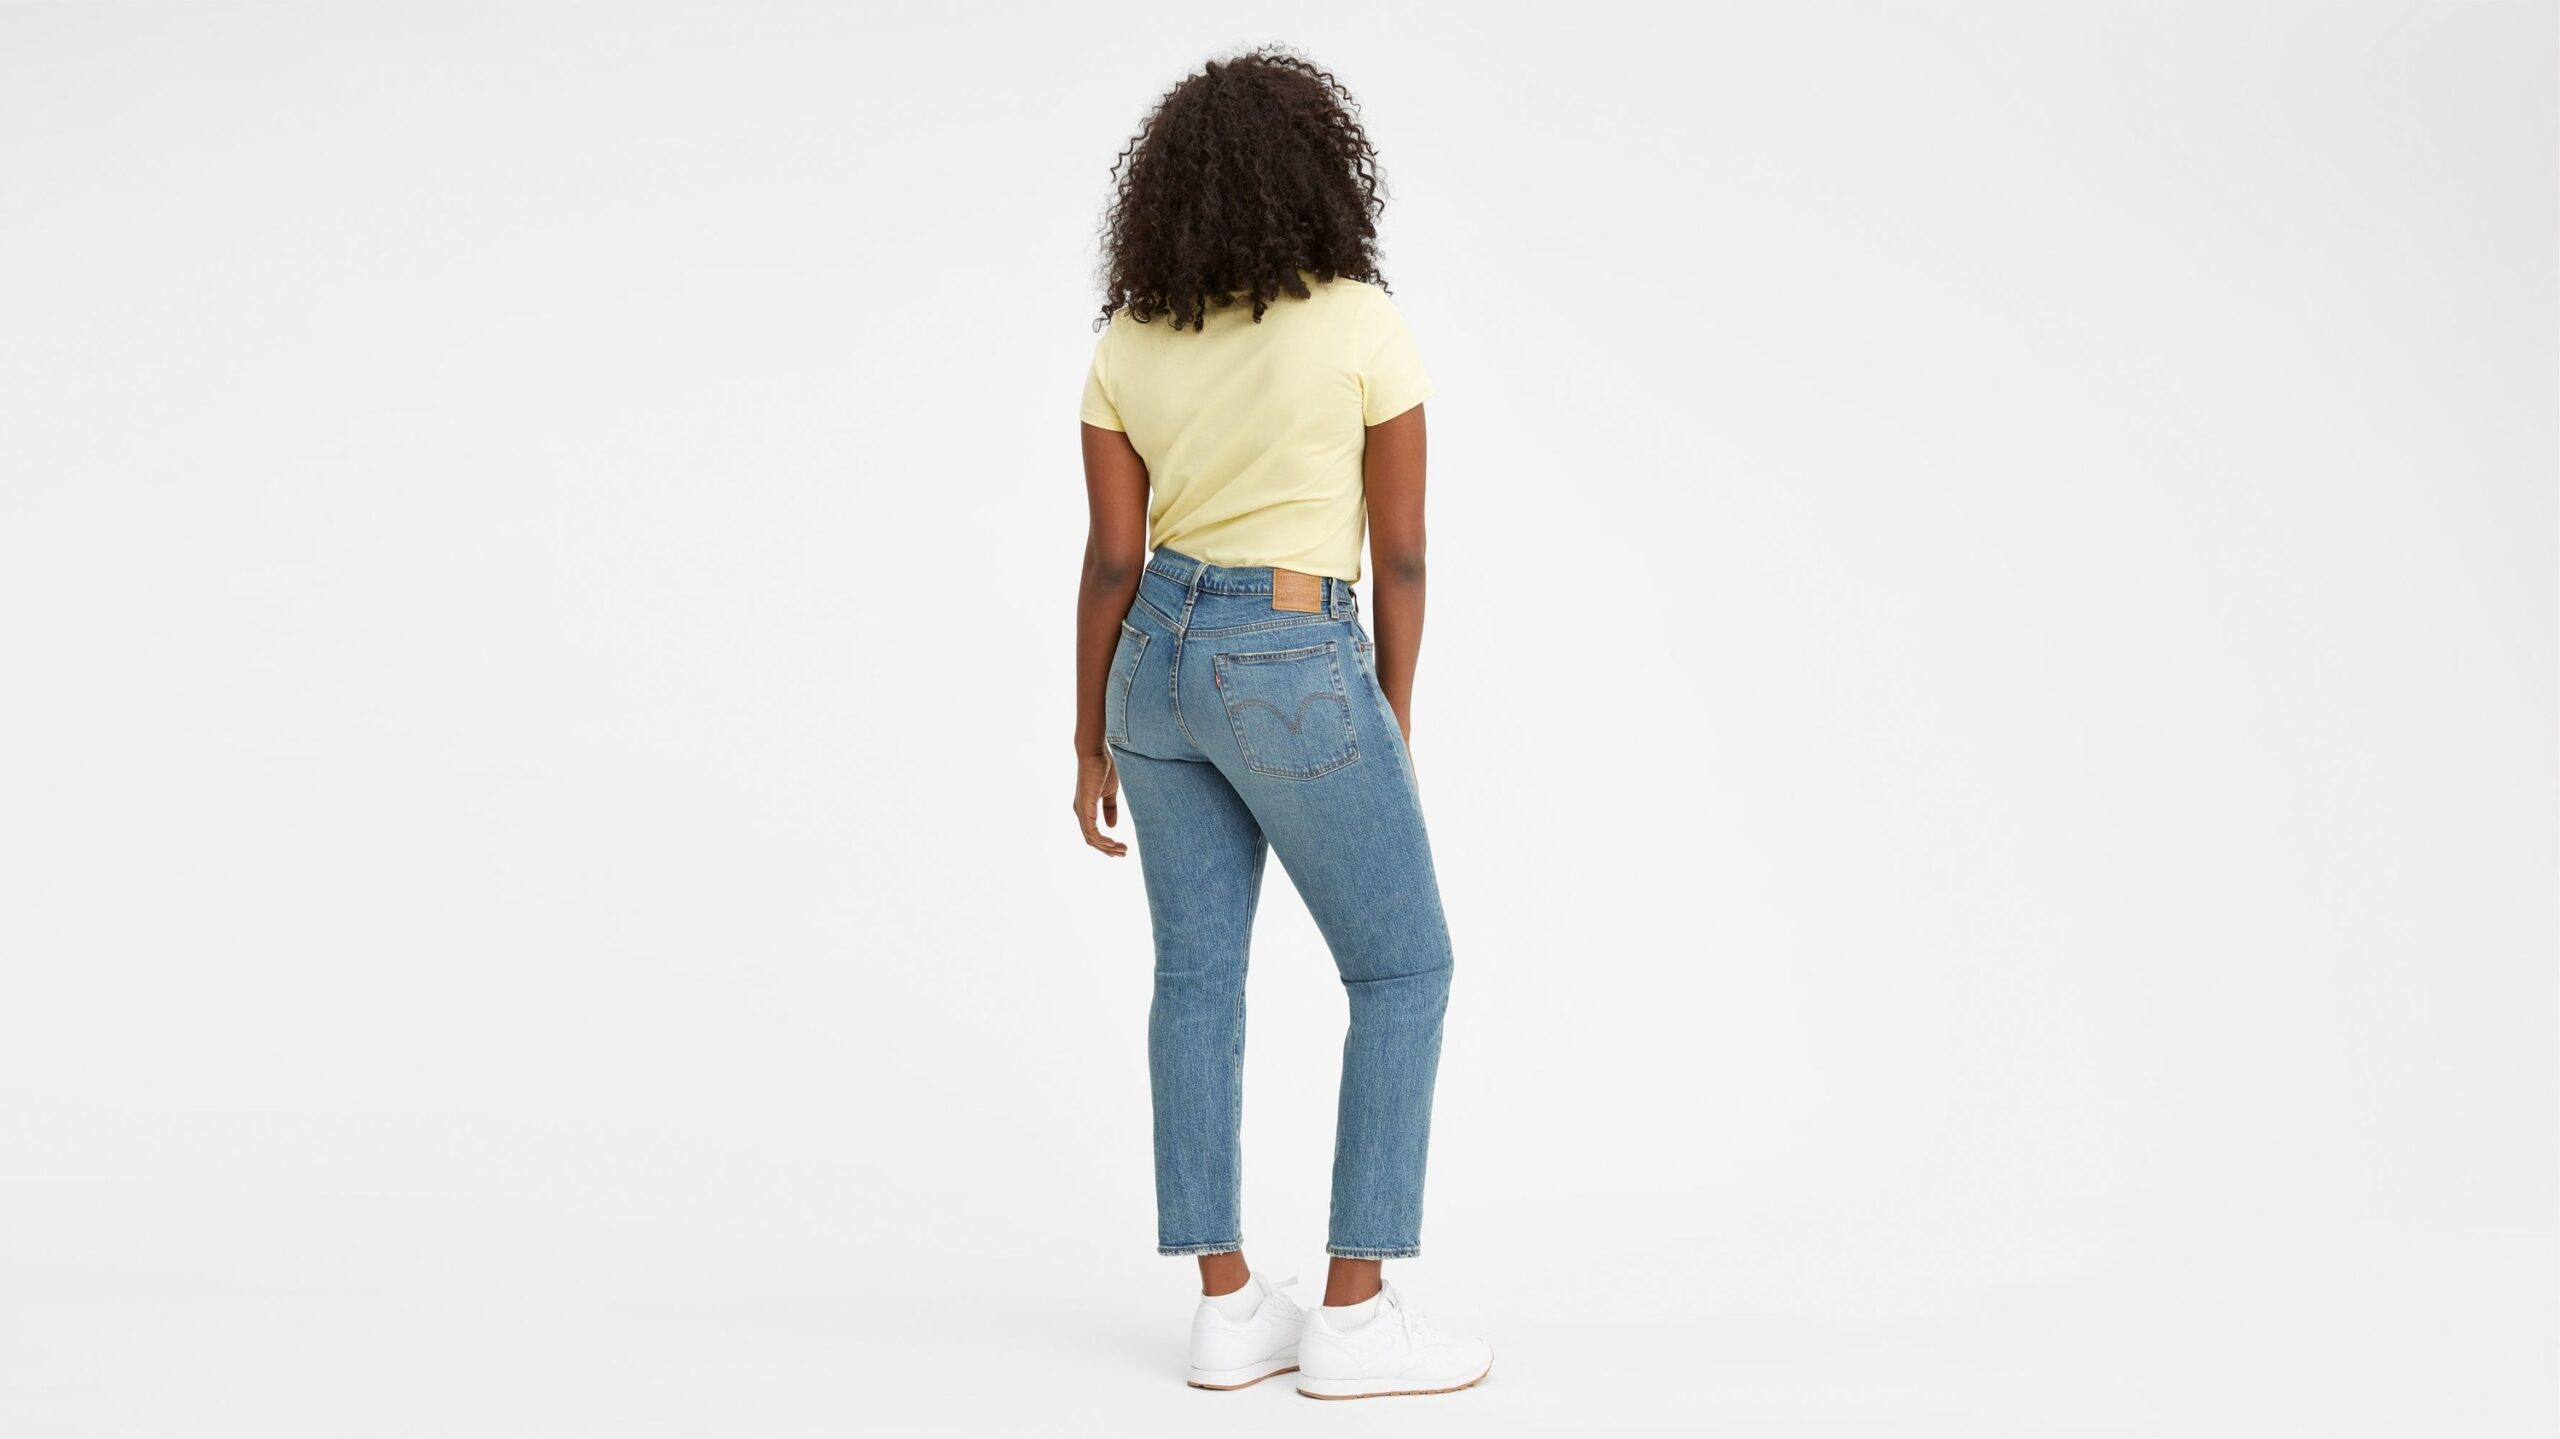 Vintage High Waisted Levis 901 Jeans How To Wear